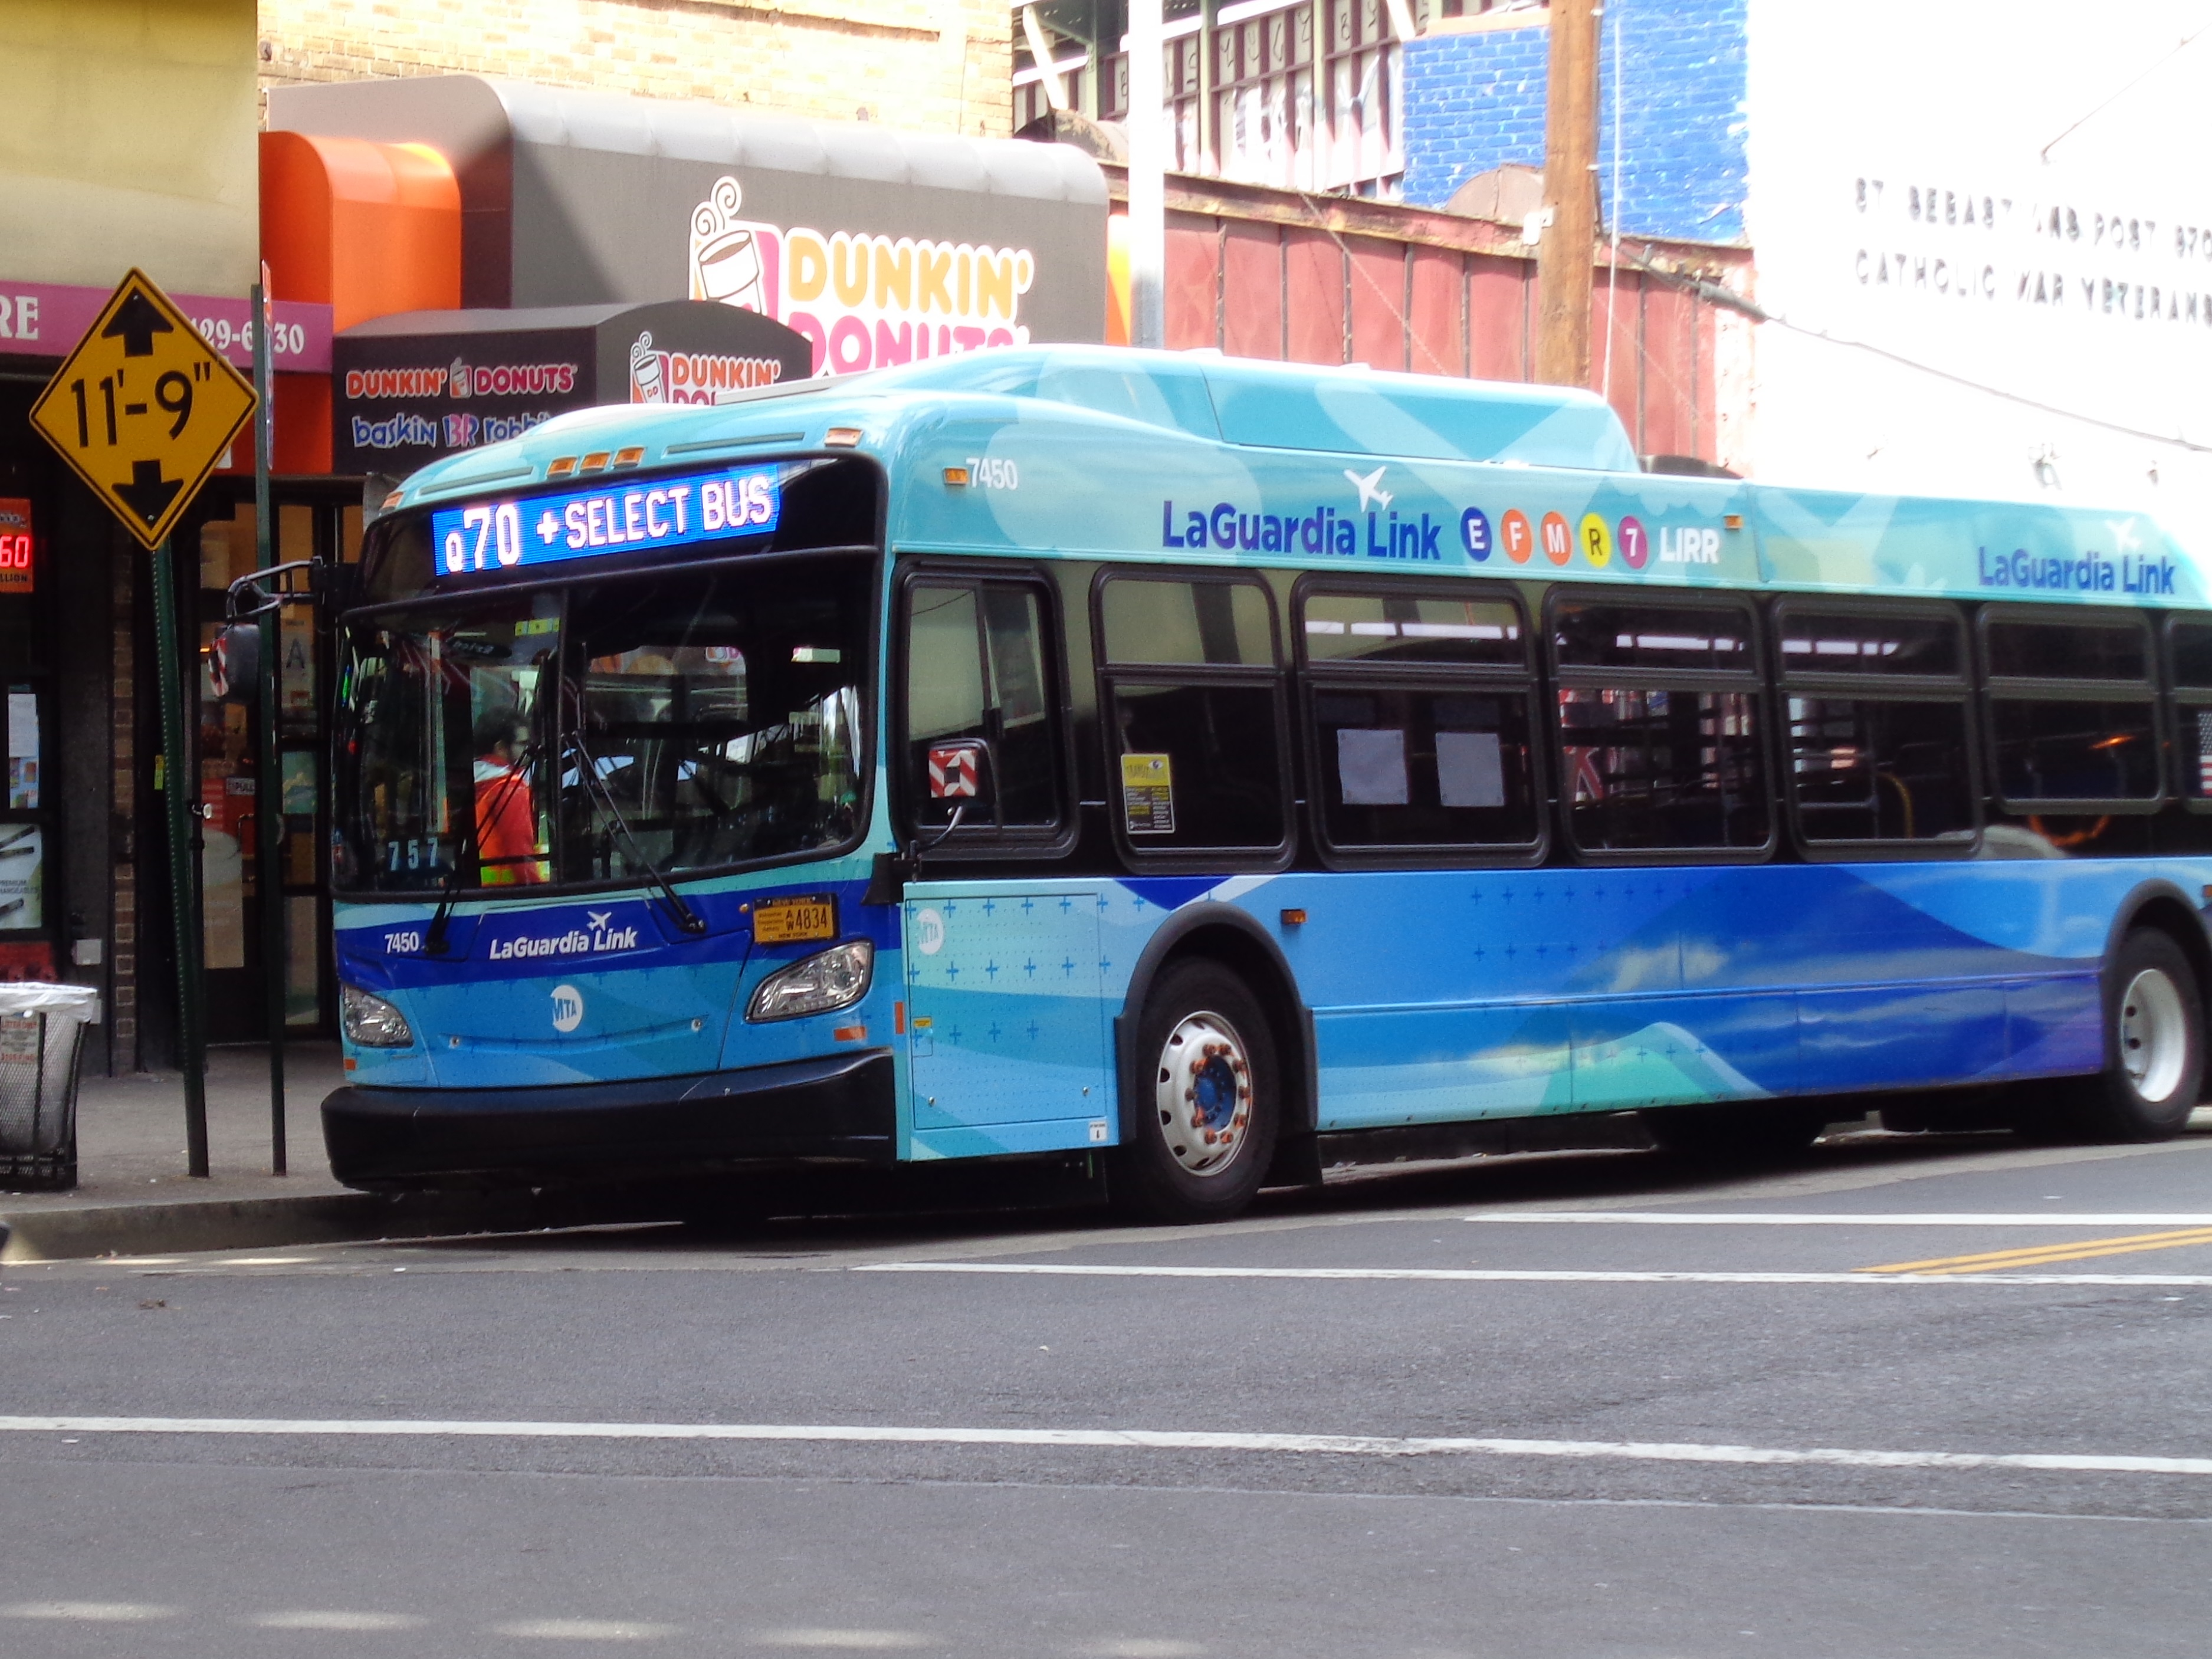 q70 (new york city bus) - wikipedia